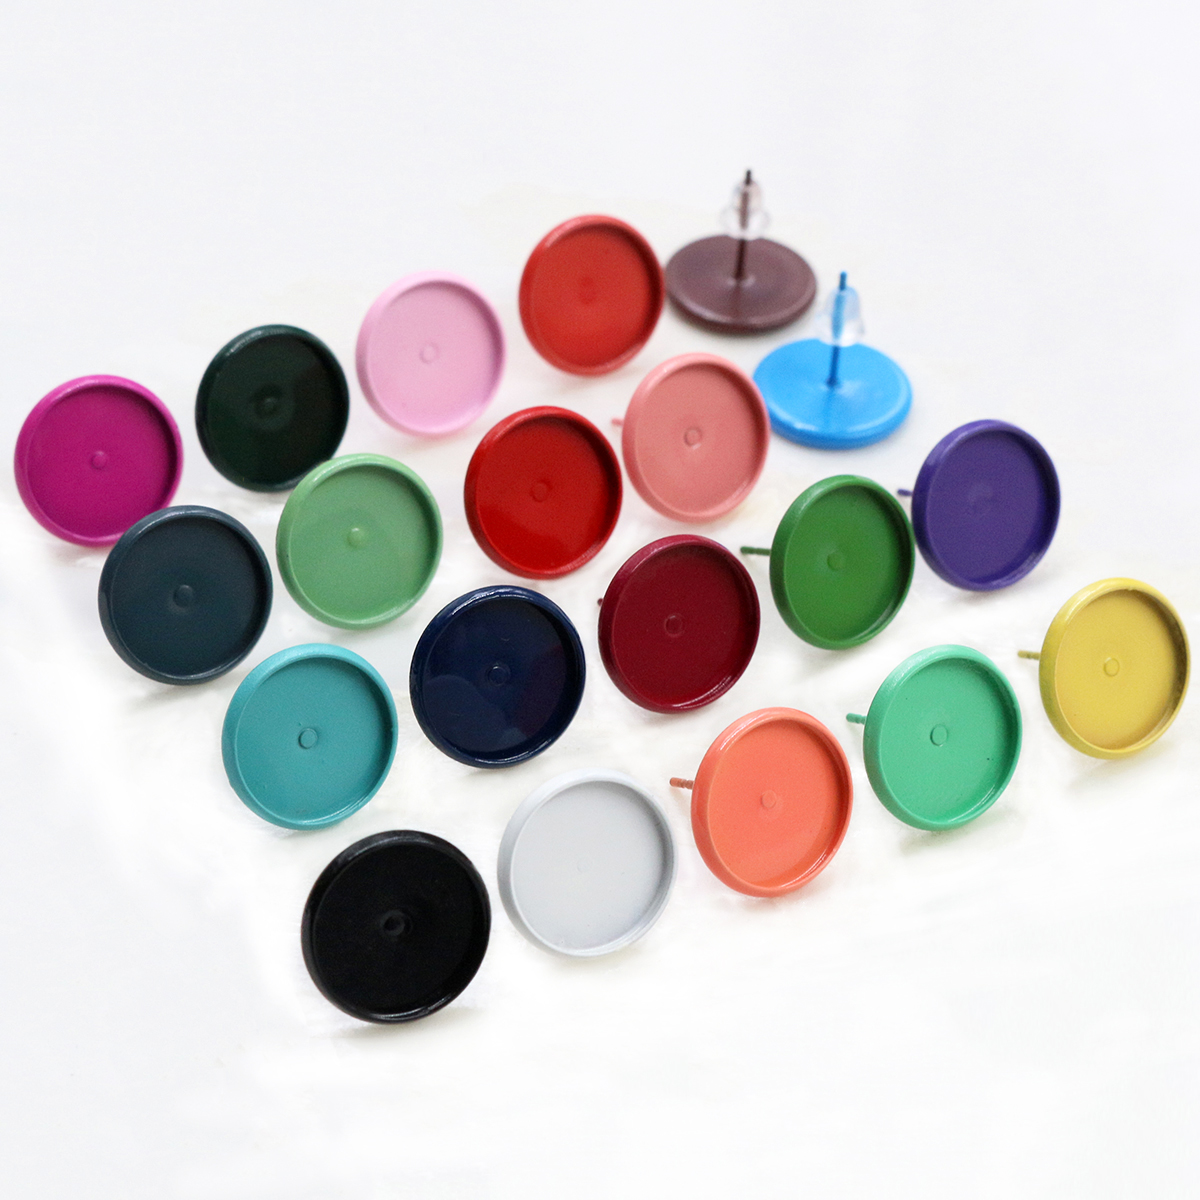 12mm 20pcs/ Lot  26 Color Plated Earring Studs,Earrings Blank/Base,Fit 12mm Glass Cabochons,Buttons;Earring Bezels